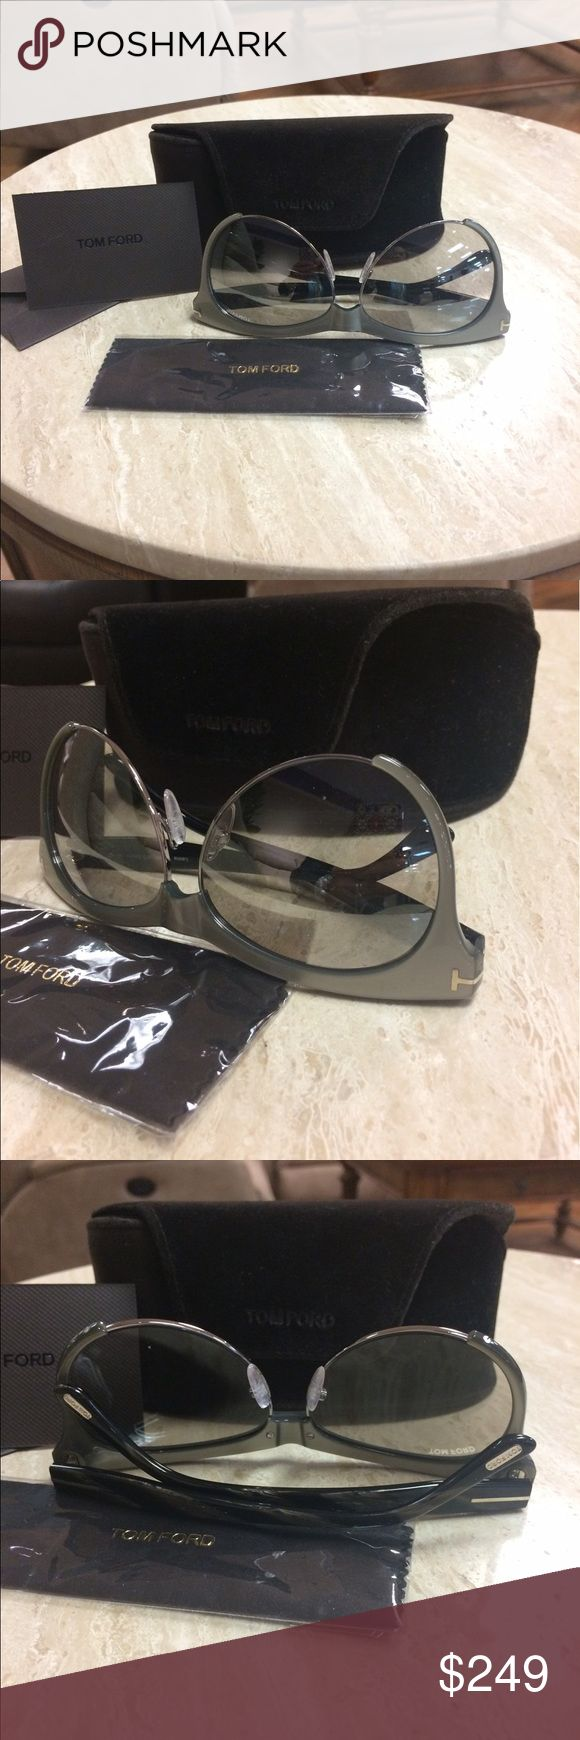 TOM FORD Classic metallic Gray frame Sunglasses In excellent condition!  Comes with everything in the picture.  Final sale trade value higher Tom Ford Accessories Sunglasses